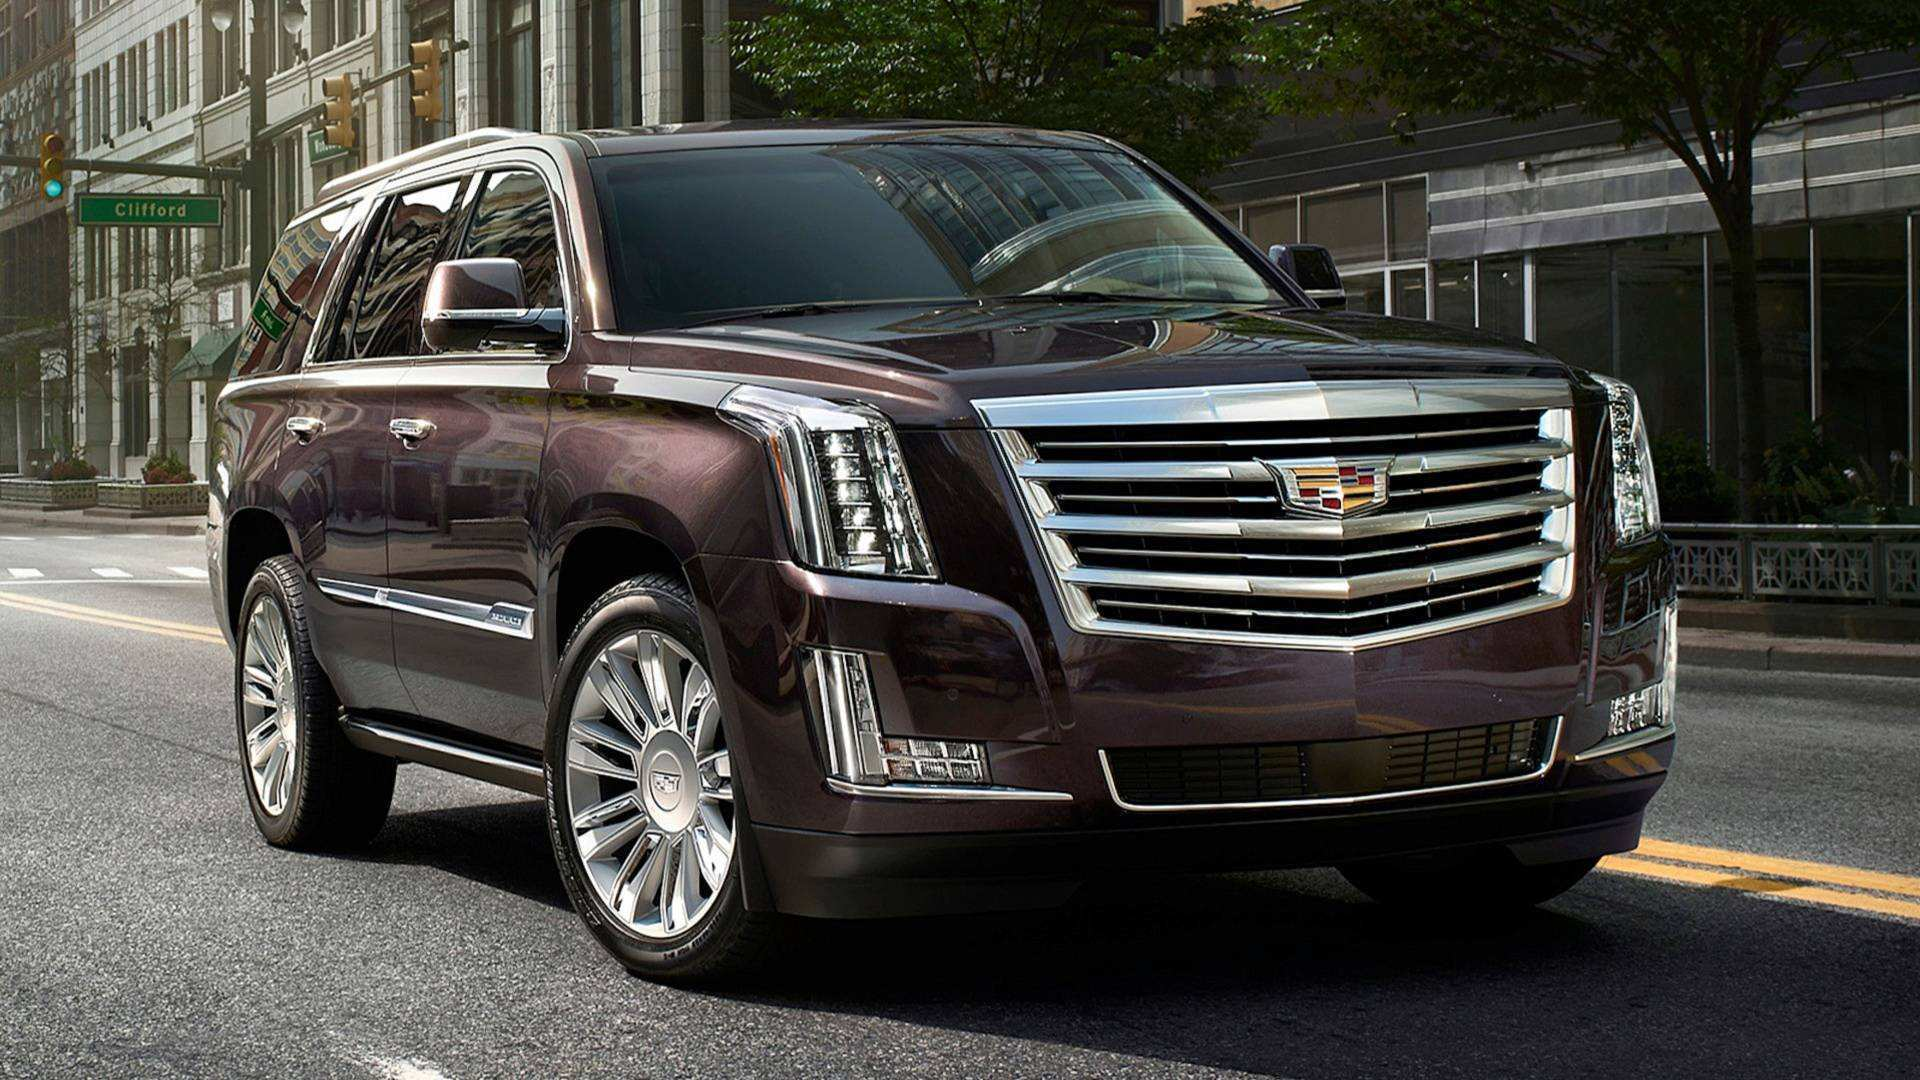 75 A 2020 Cadillac Escalade Luxury Suv Engine